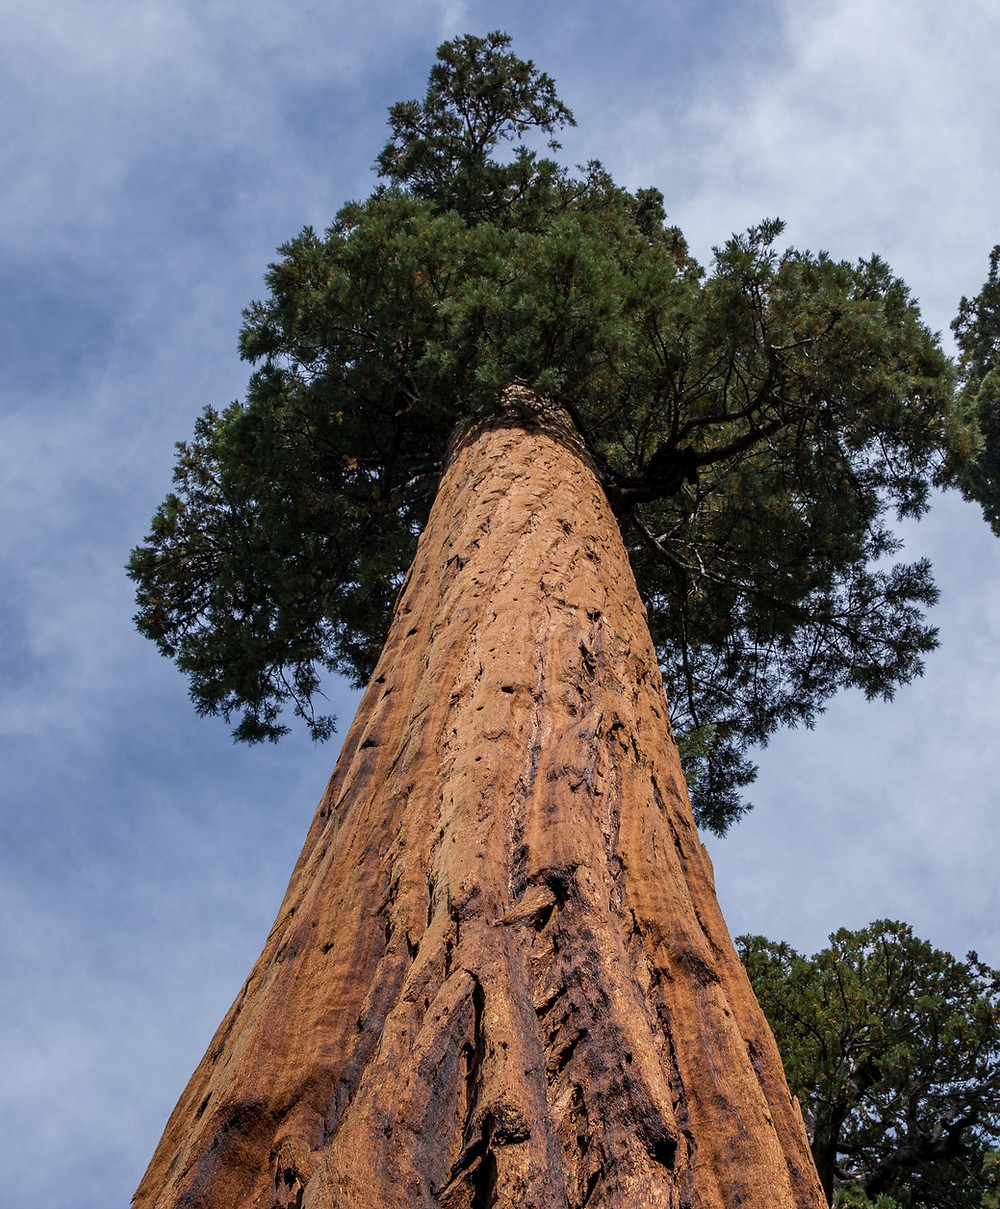 A giant sequoia tree rising into the air